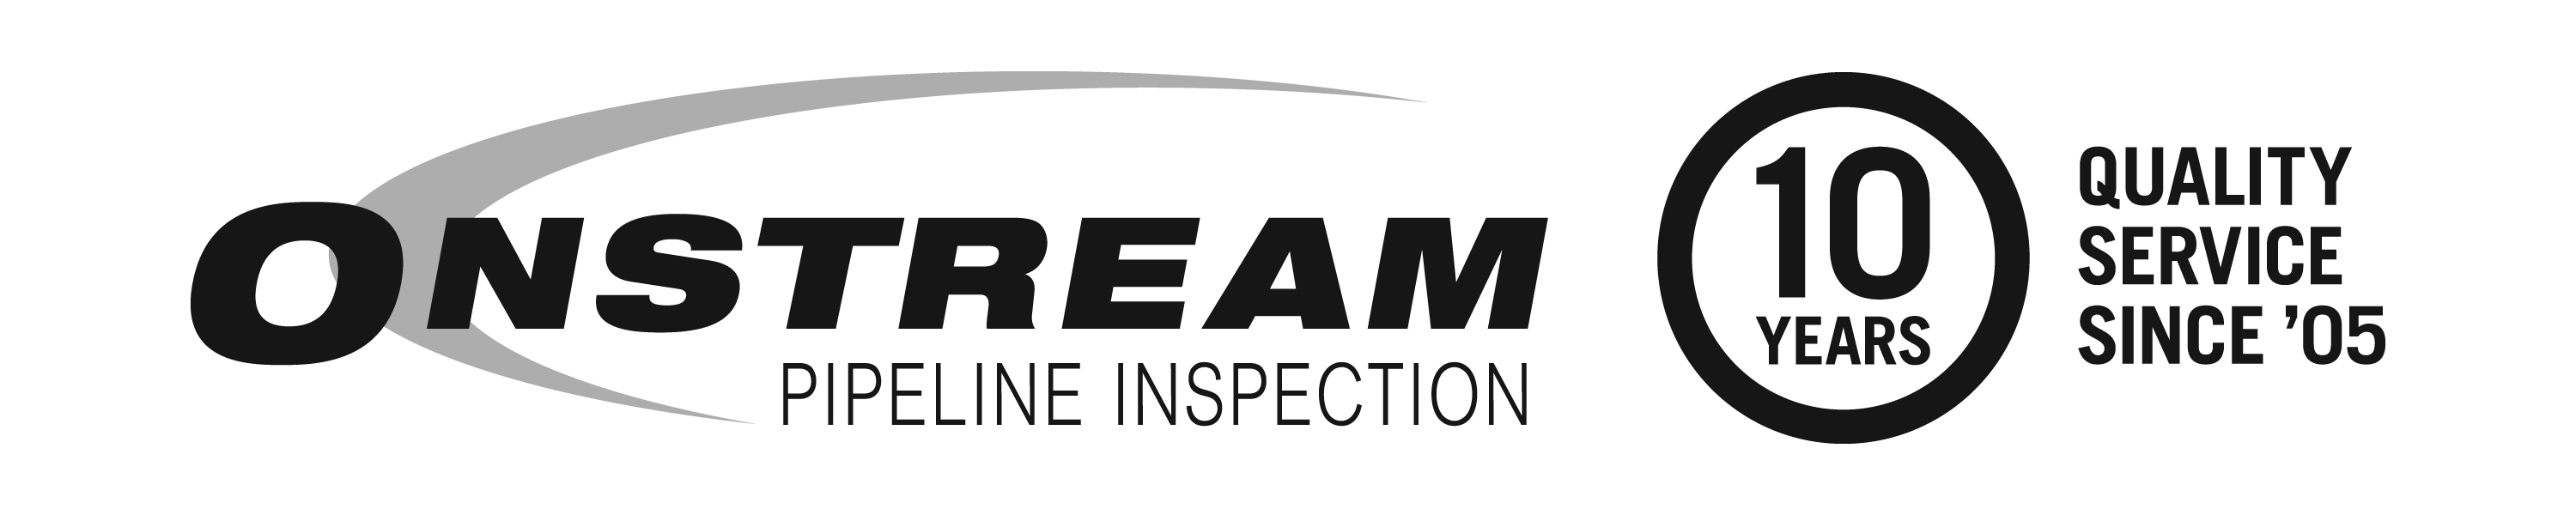 Home - ONSTREAM | Pipeline Inspection Services